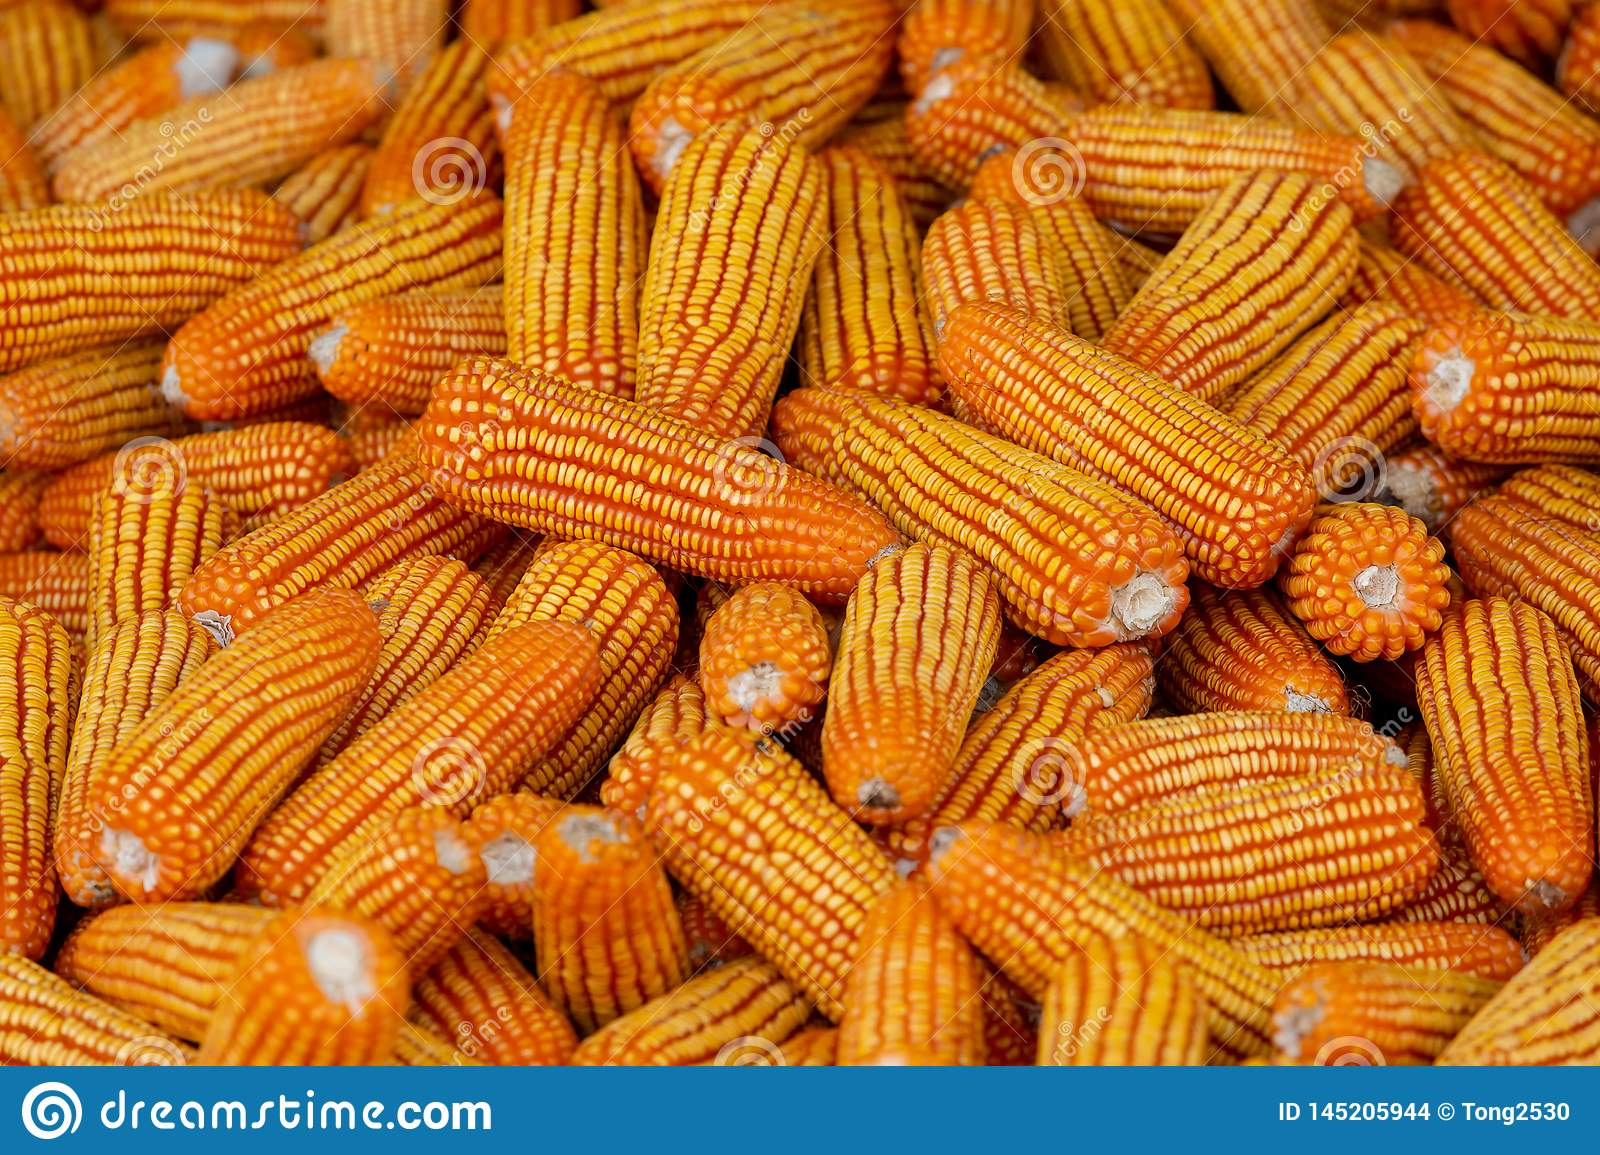 Corn For Animal Feed, Corn Texture  Yellow Corns As